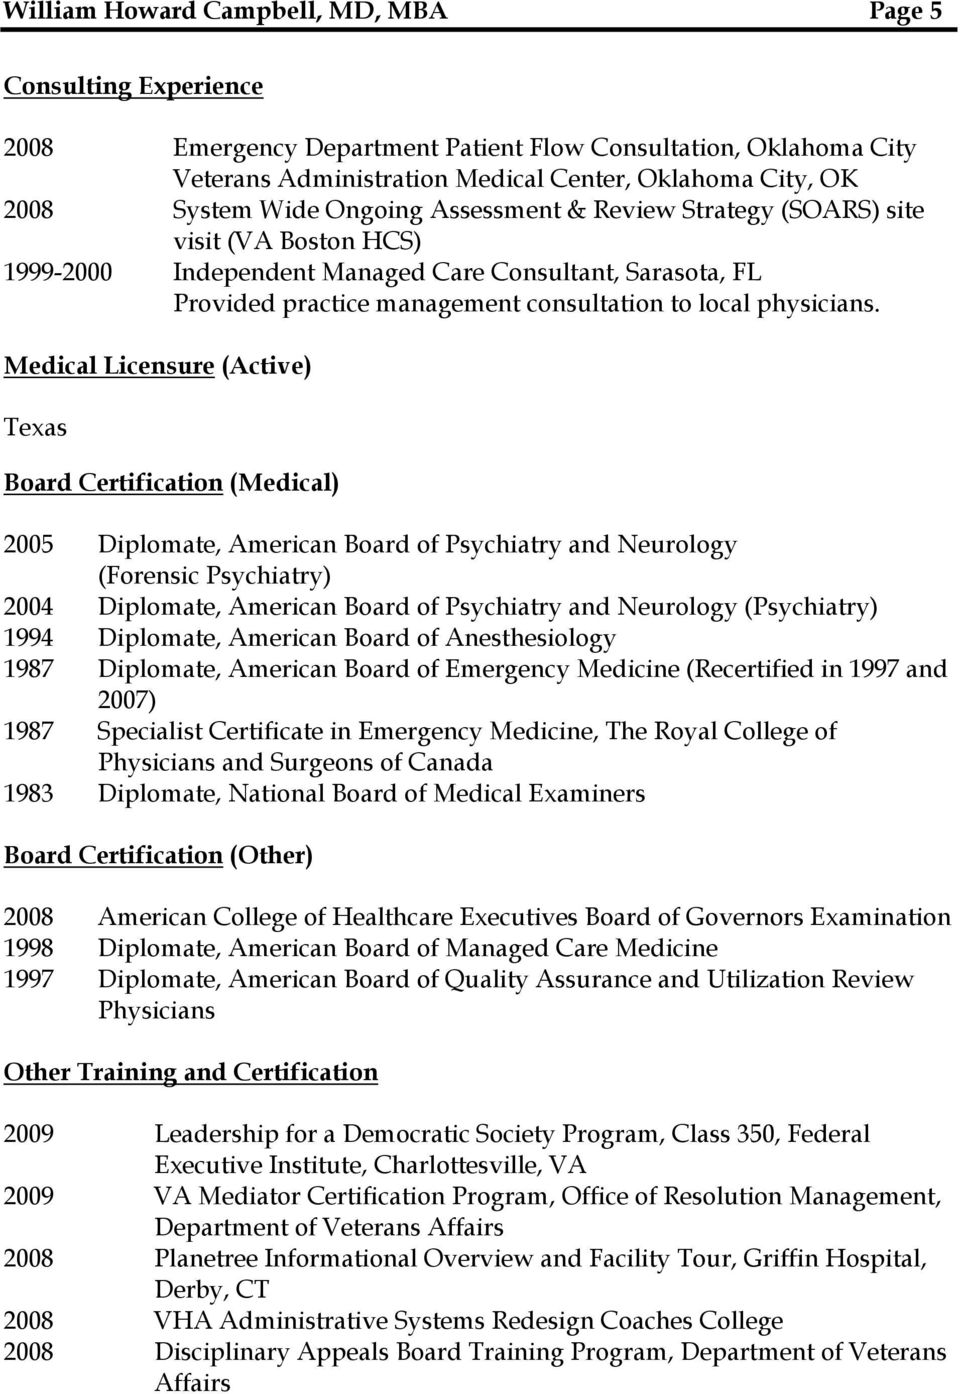 Medical Licensure (Active) Texas Board Certification (Medical) 2005 Diplomate, American Board of Psychiatry and Neurology (Forensic Psychiatry) 2004 Diplomate, American Board of Psychiatry and